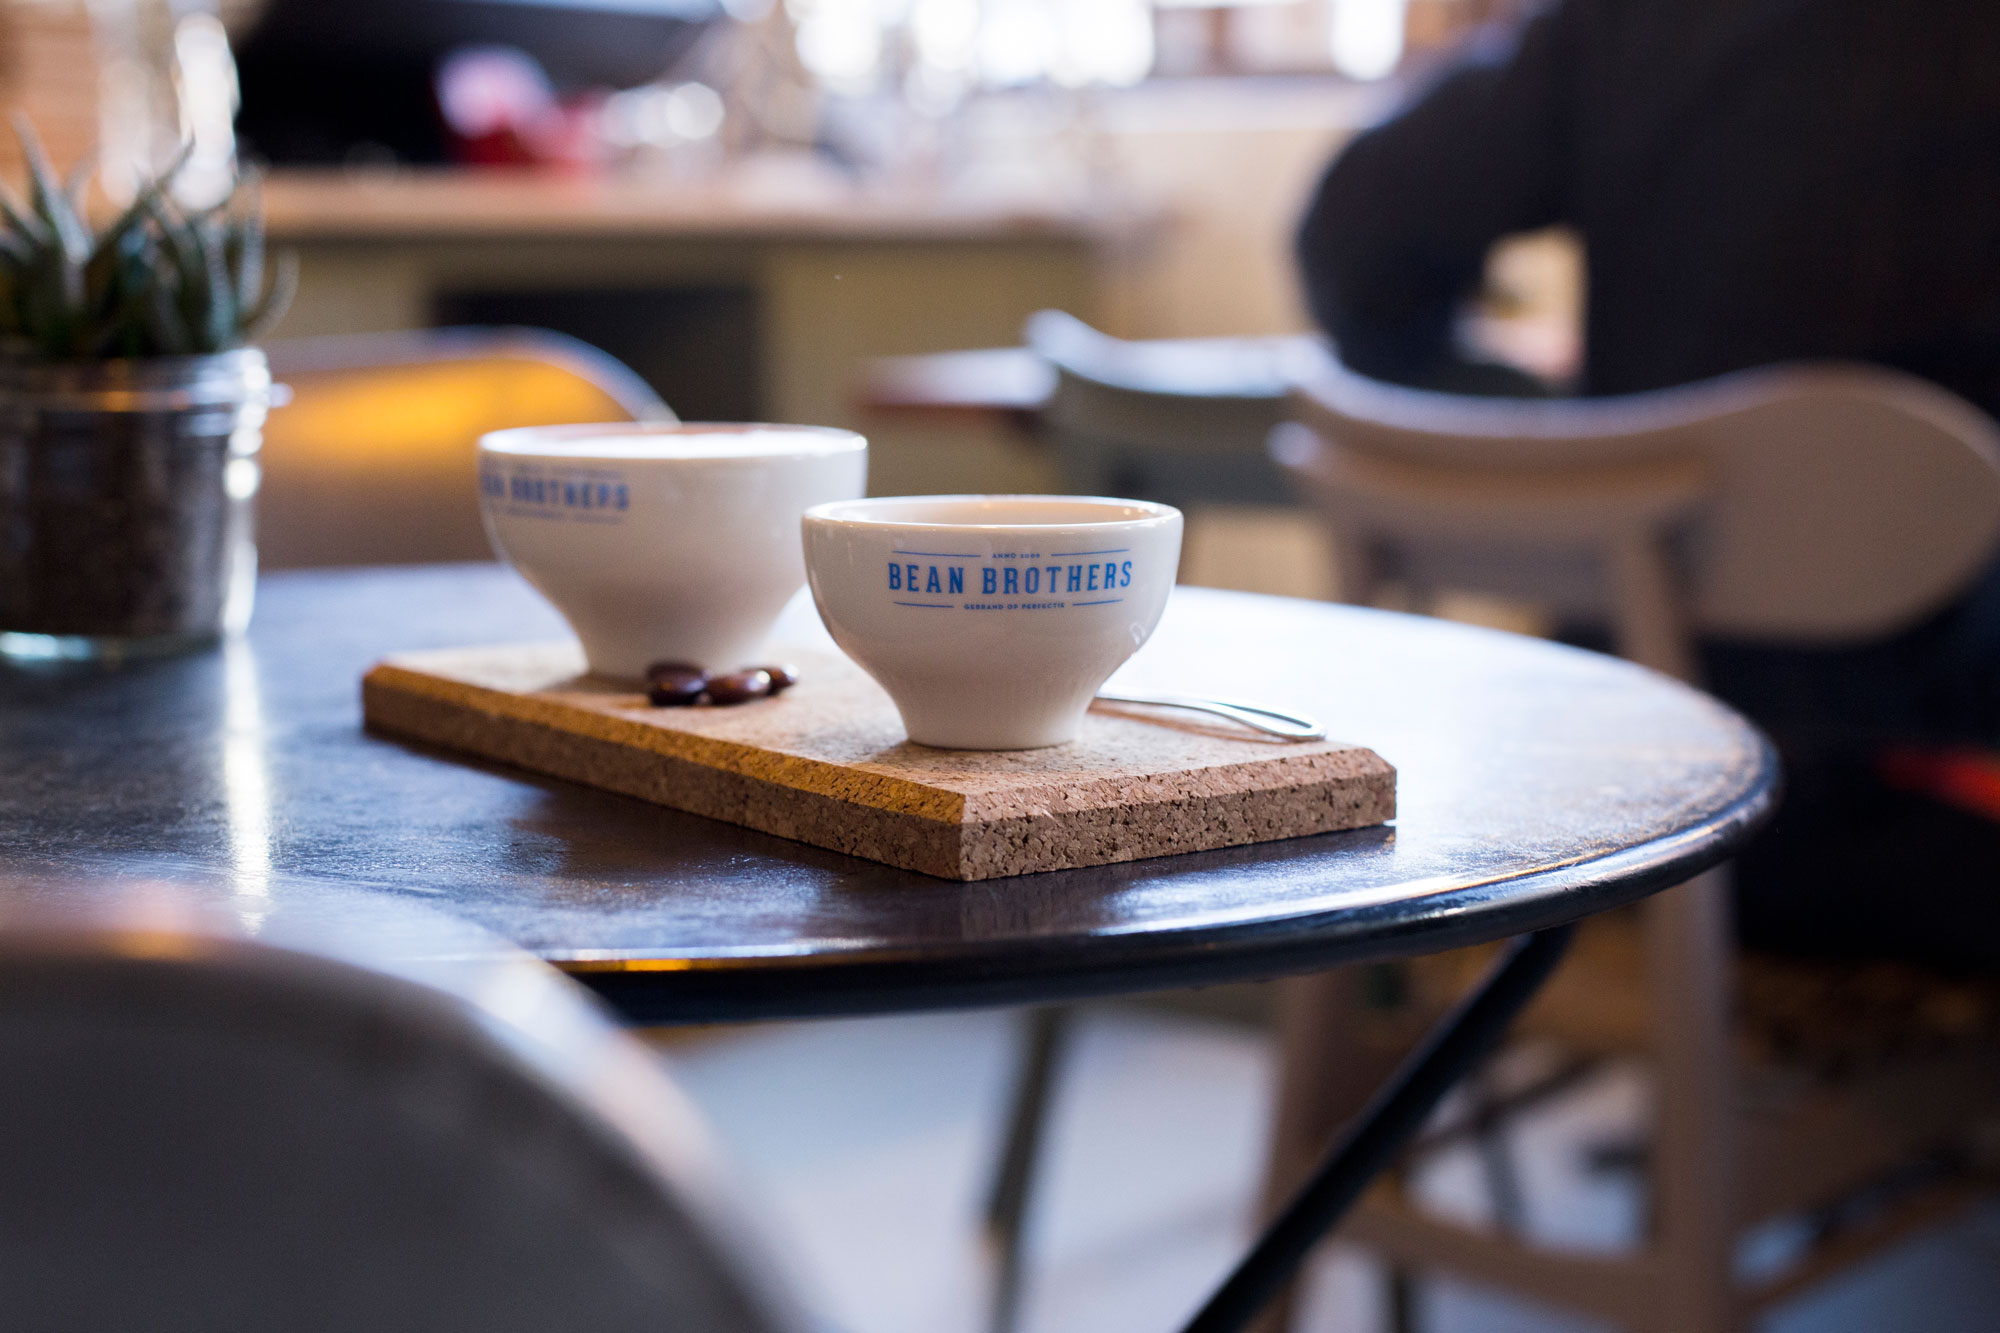 Bean Brothers JADE coffee cups presentation at DDW 2015